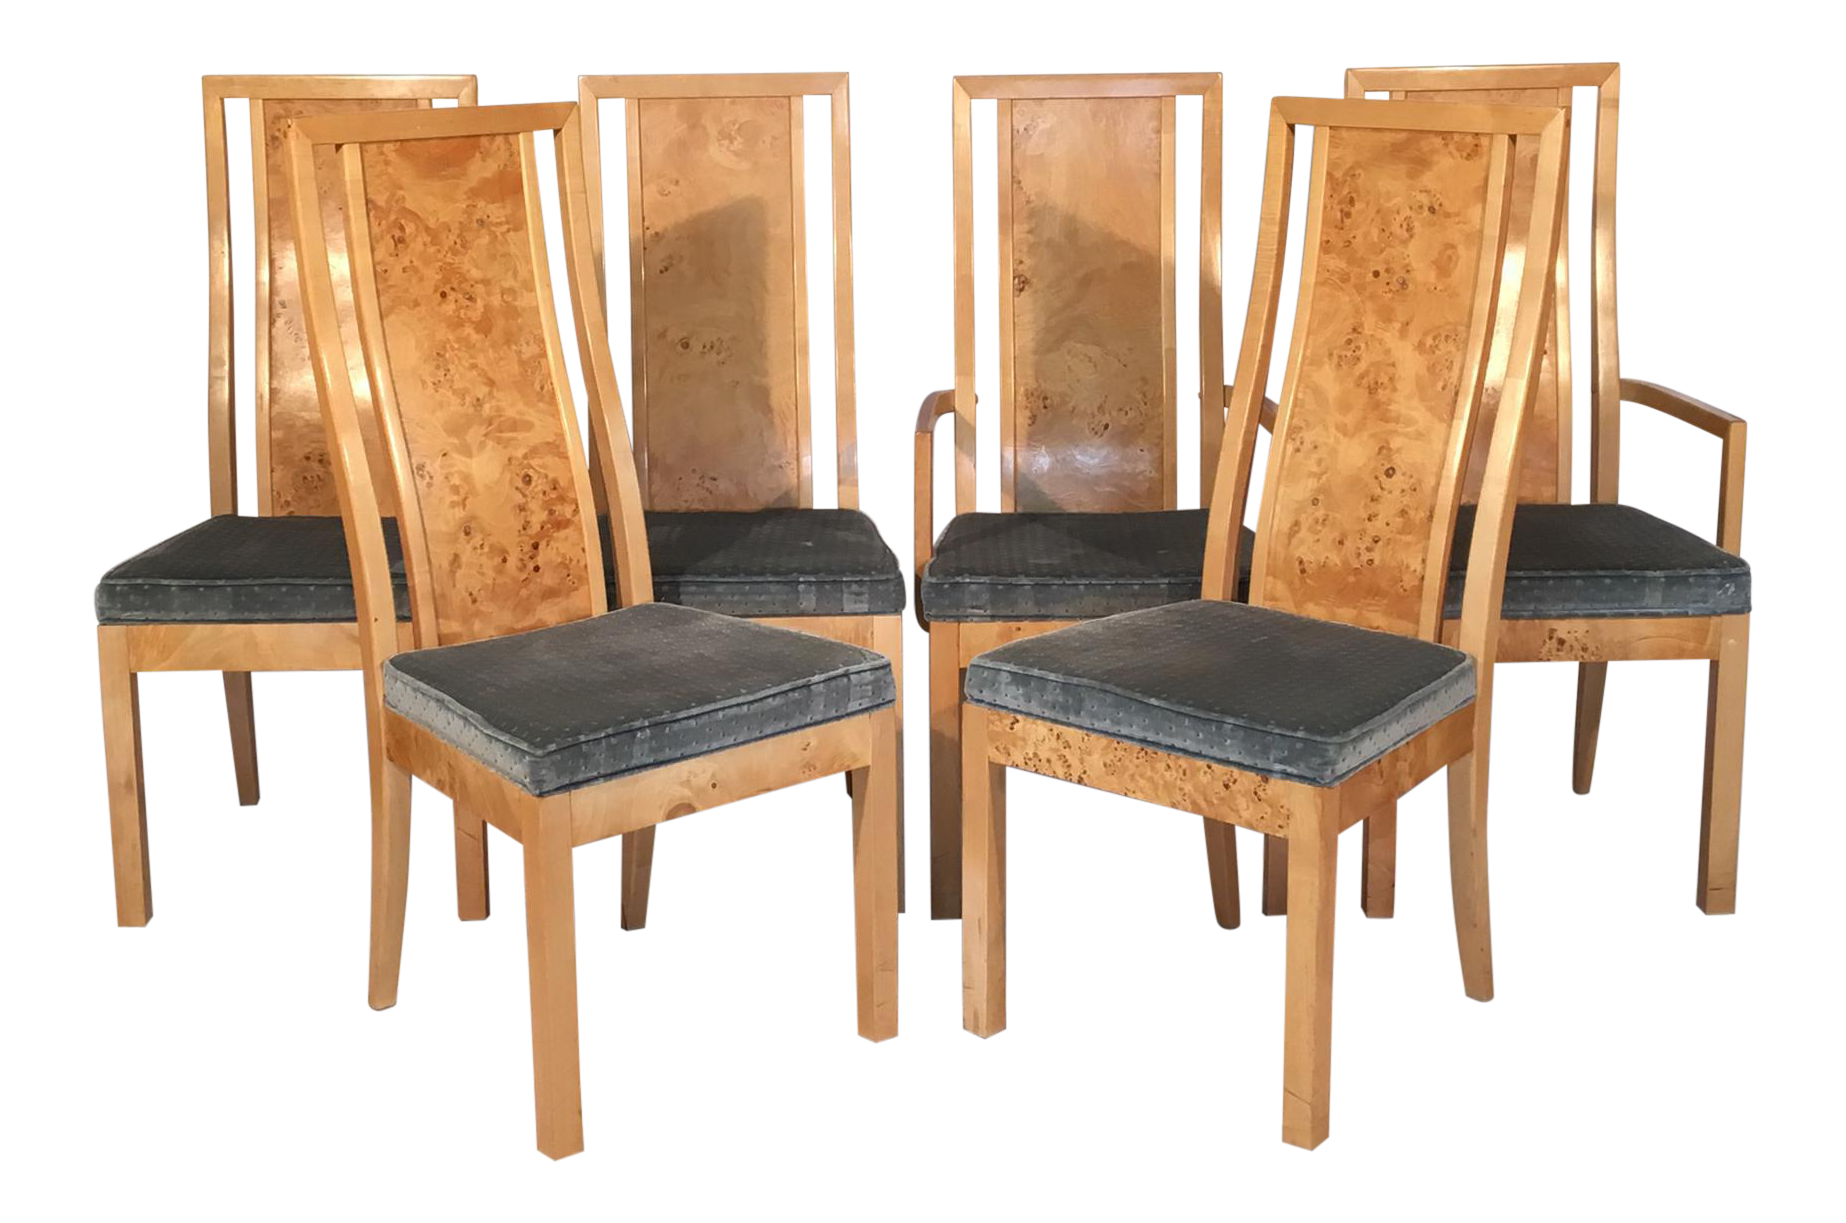 Set Of 6 Light Burlwood Chairs With Velvet Upholstered Seats Includes 2 Arm Chairs And 4 Side Chairs Excellent Vintage Dining Chairs Chair Upholstered Seating